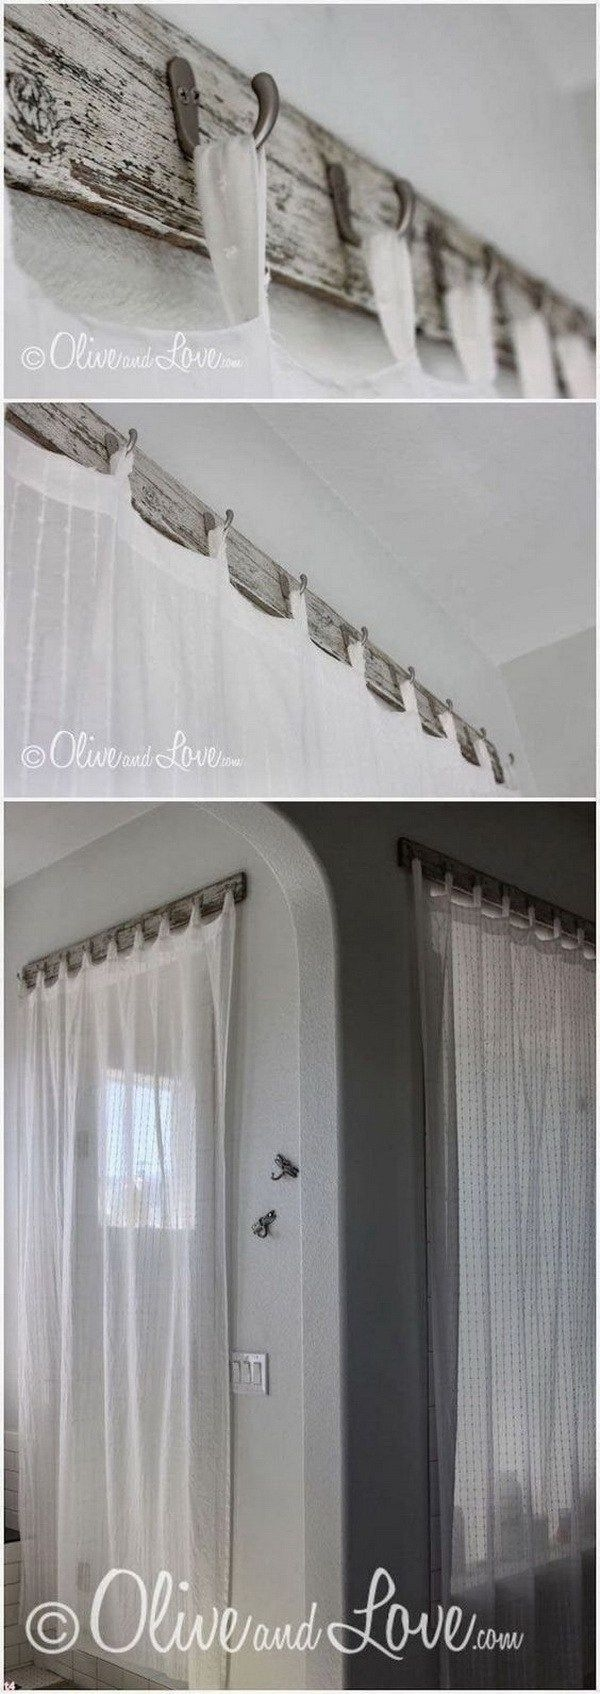 Best 25 Shower Curtain Rods Ideas On Pinterest Farmhouse Shower With L Curtain Rods (Image 3 of 25)